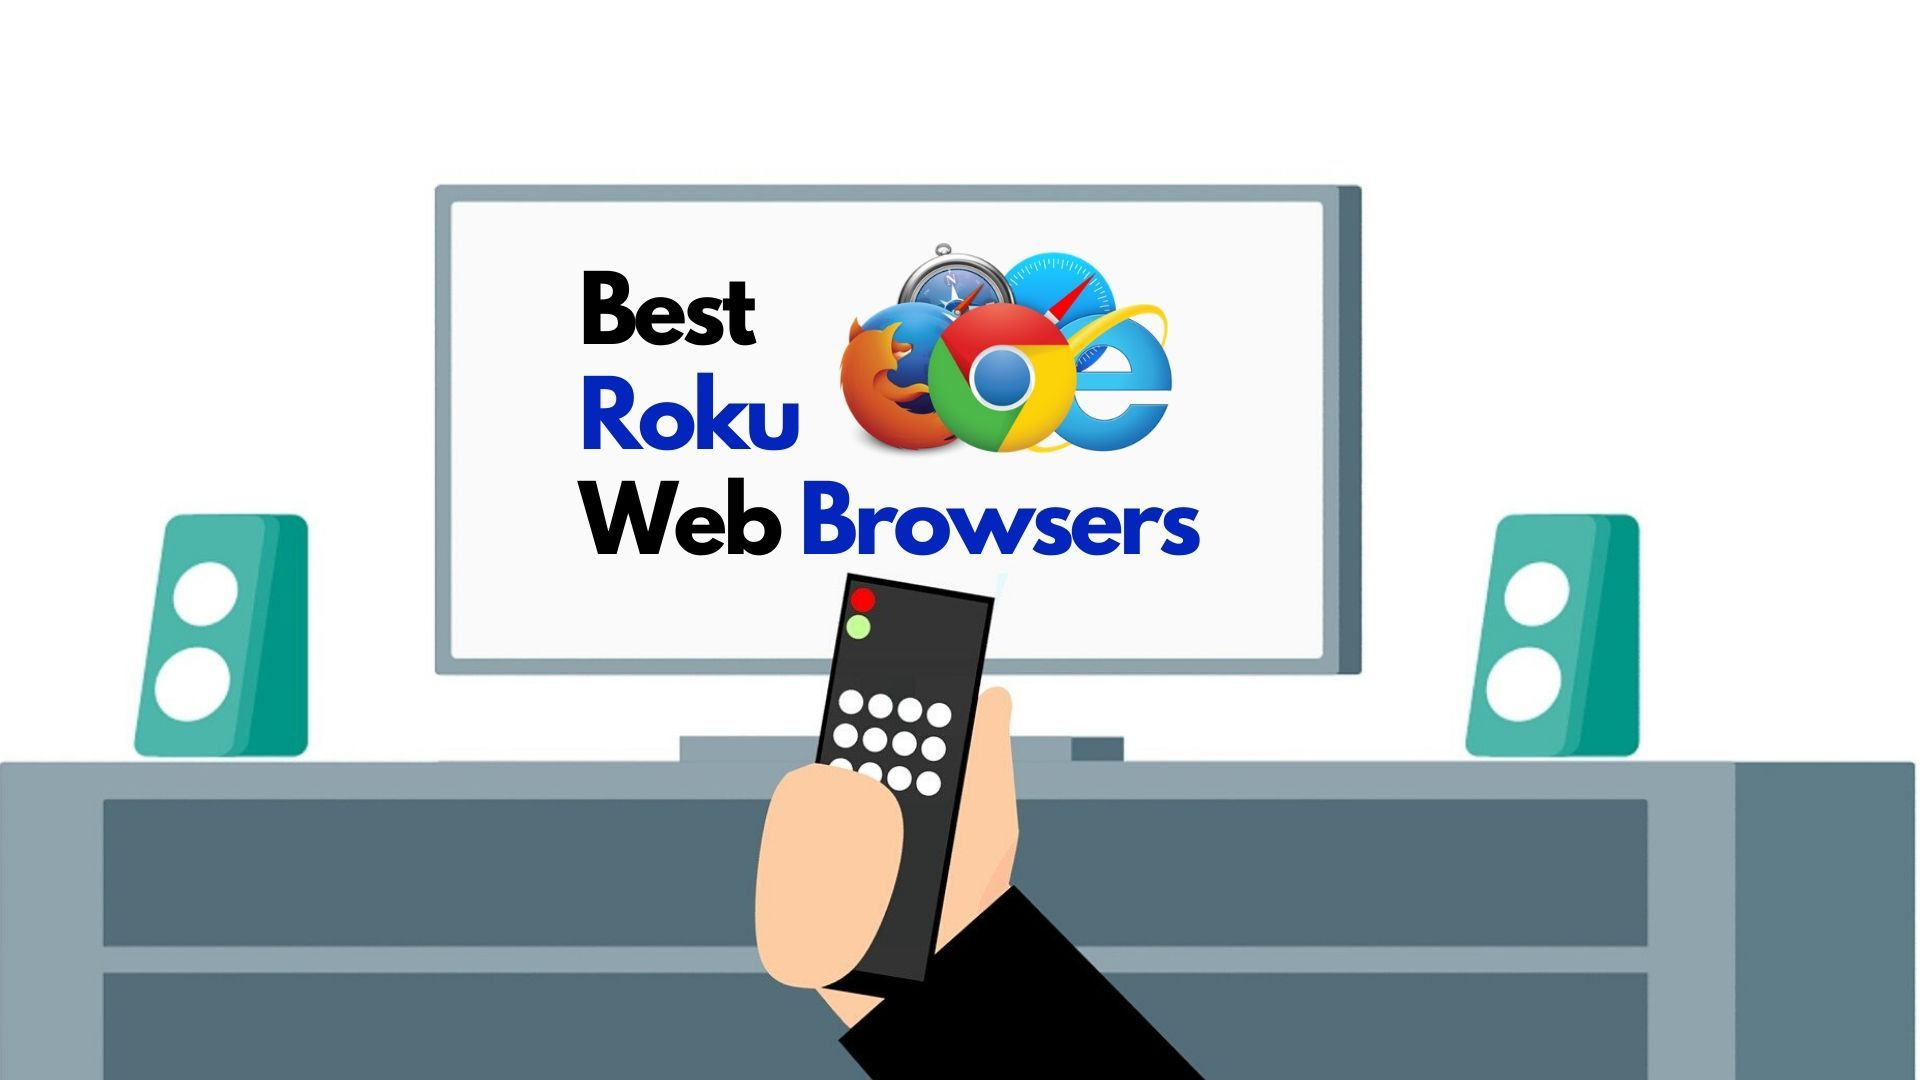 Best Roku Web Browsers